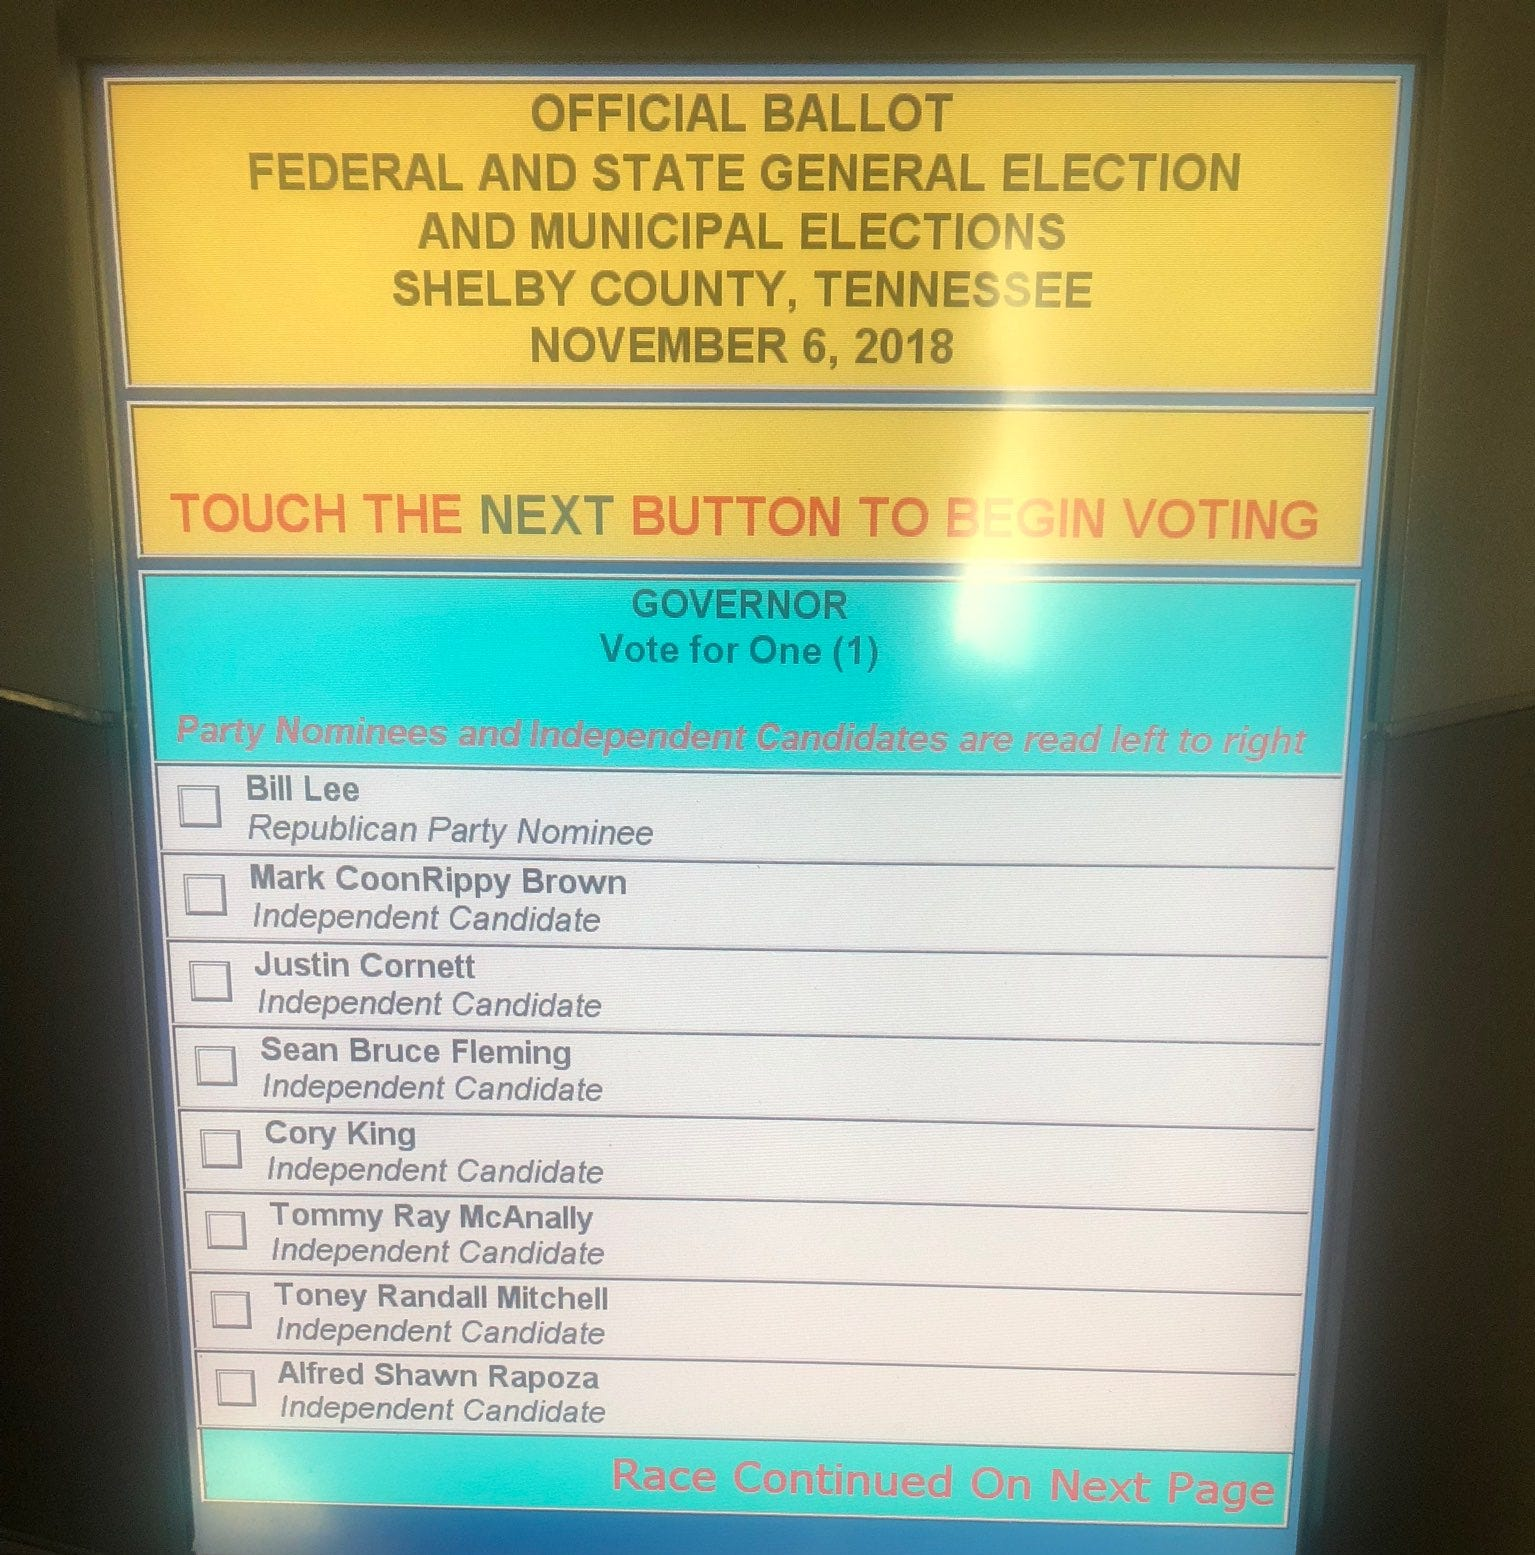 Don't press the enlarge print button on ballot, Shelby County election officials say